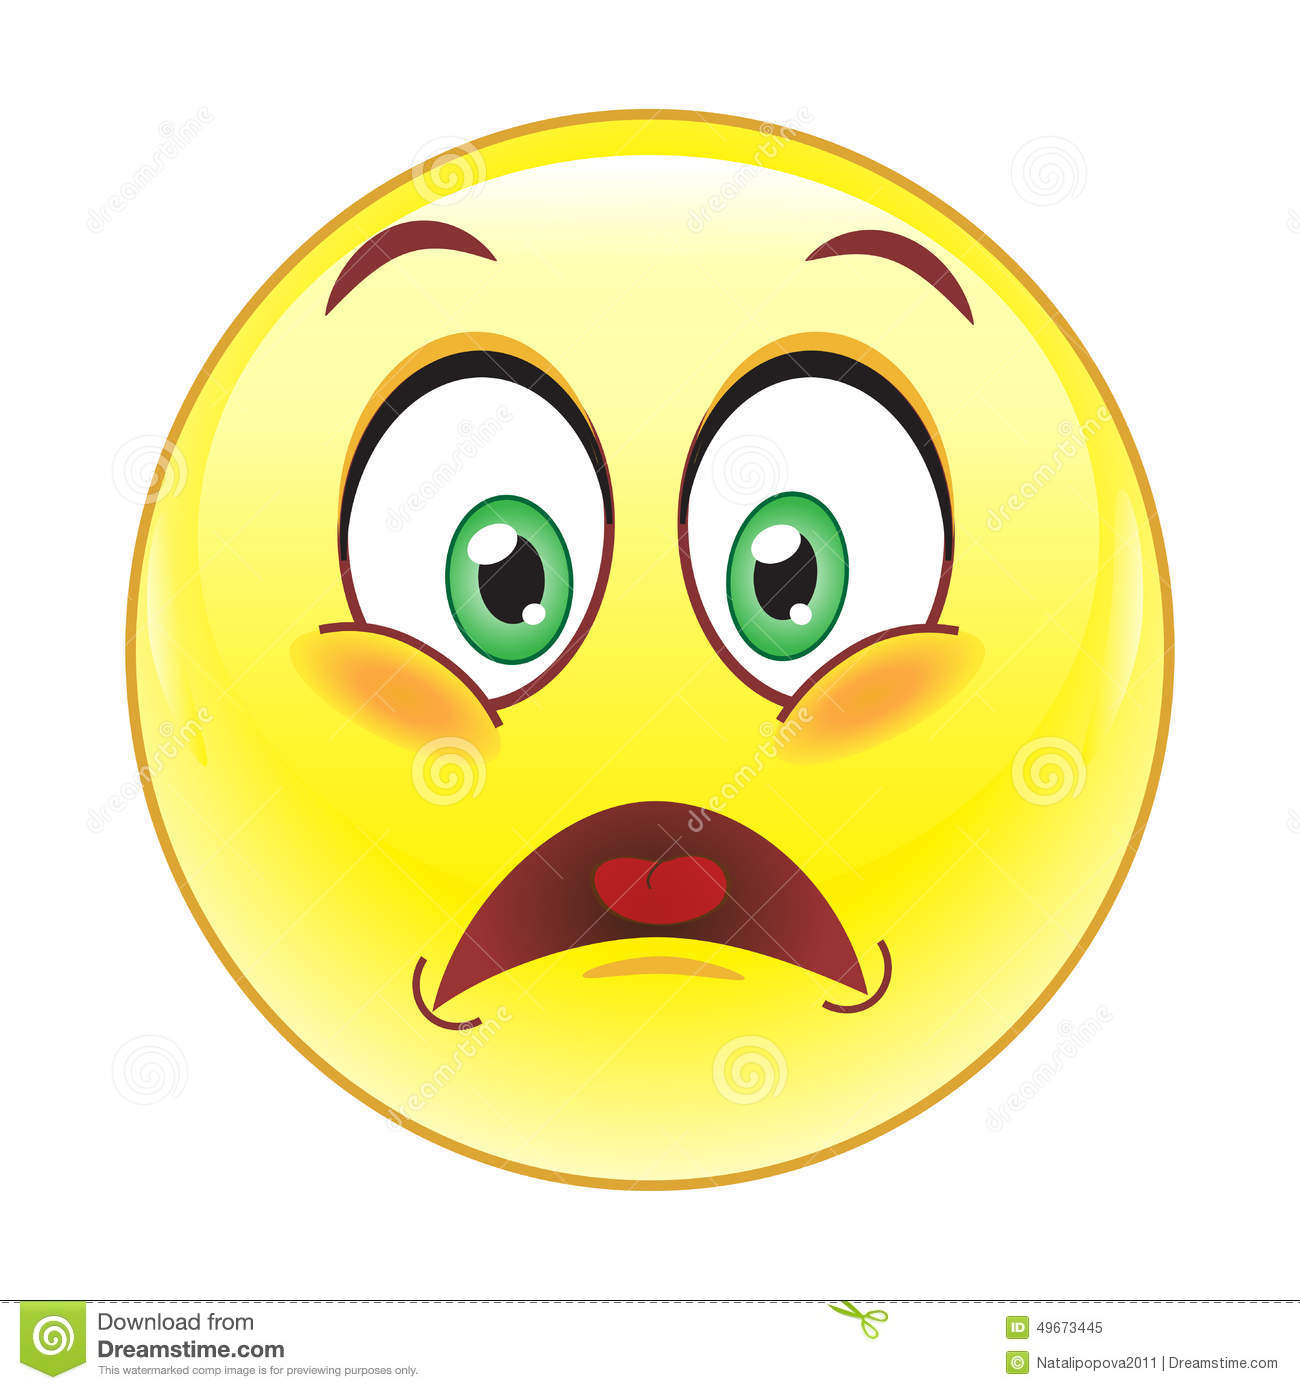 Frustrated Smiley Stock Vector - Image: 49673445